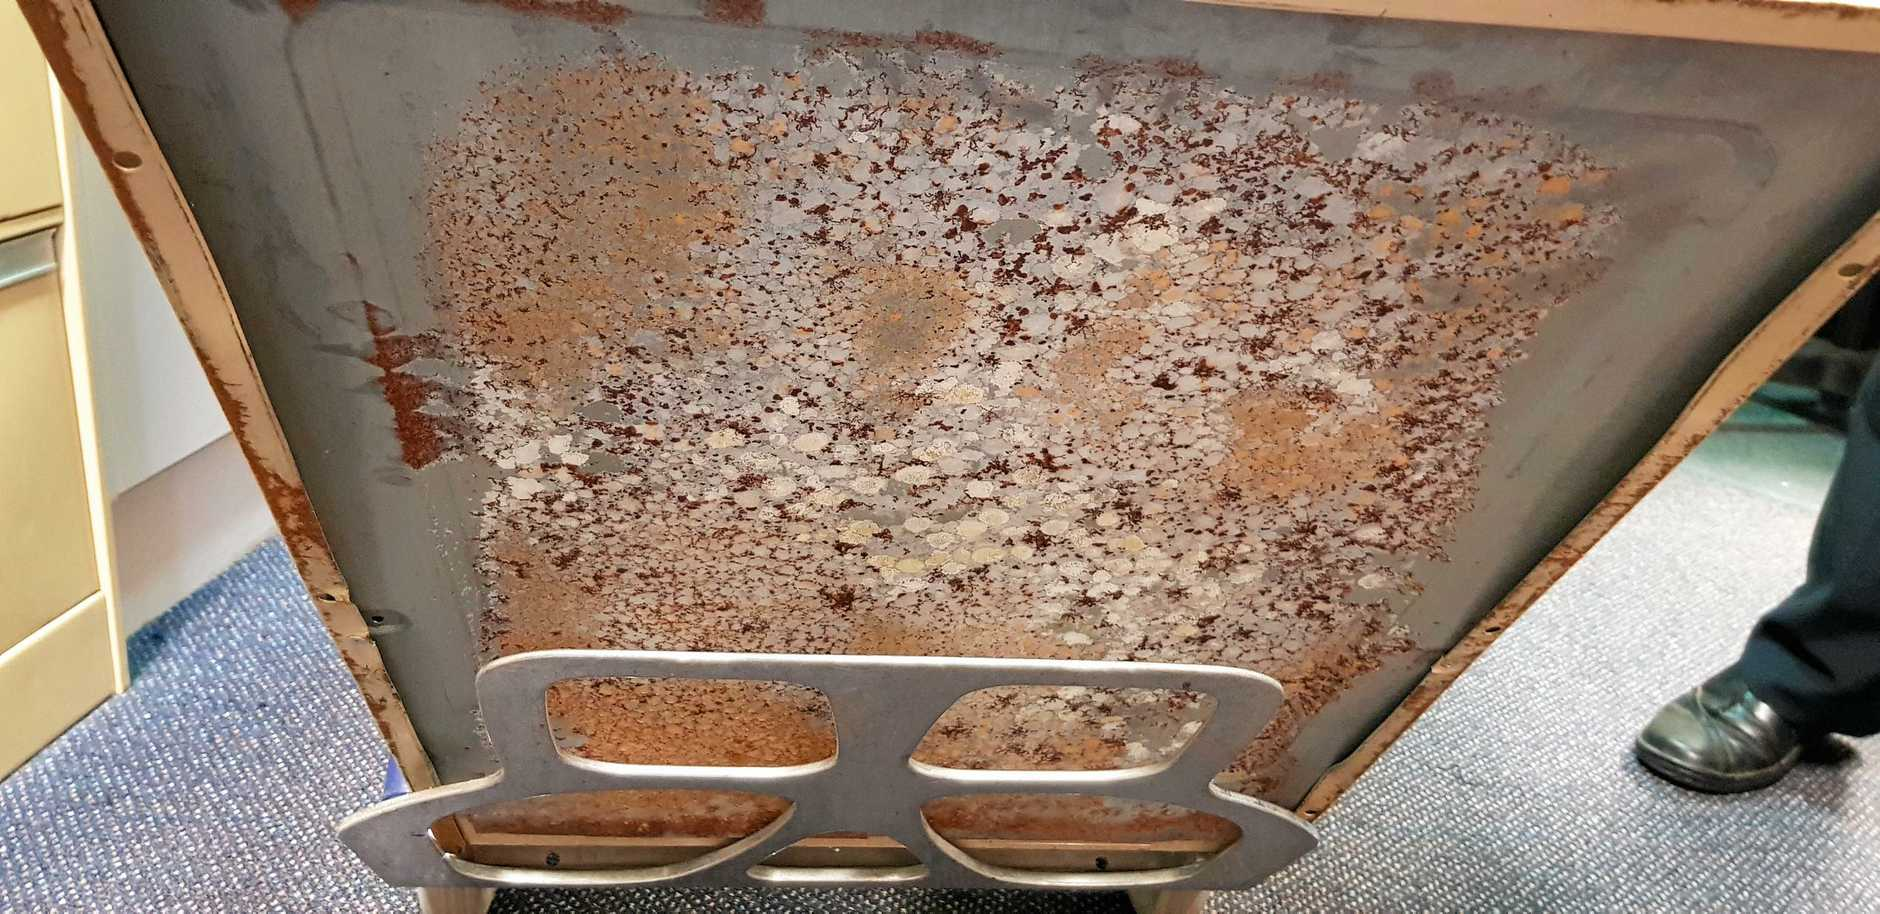 Mould discovered growing under cabinet in reception office when the cabinet was moved last week.